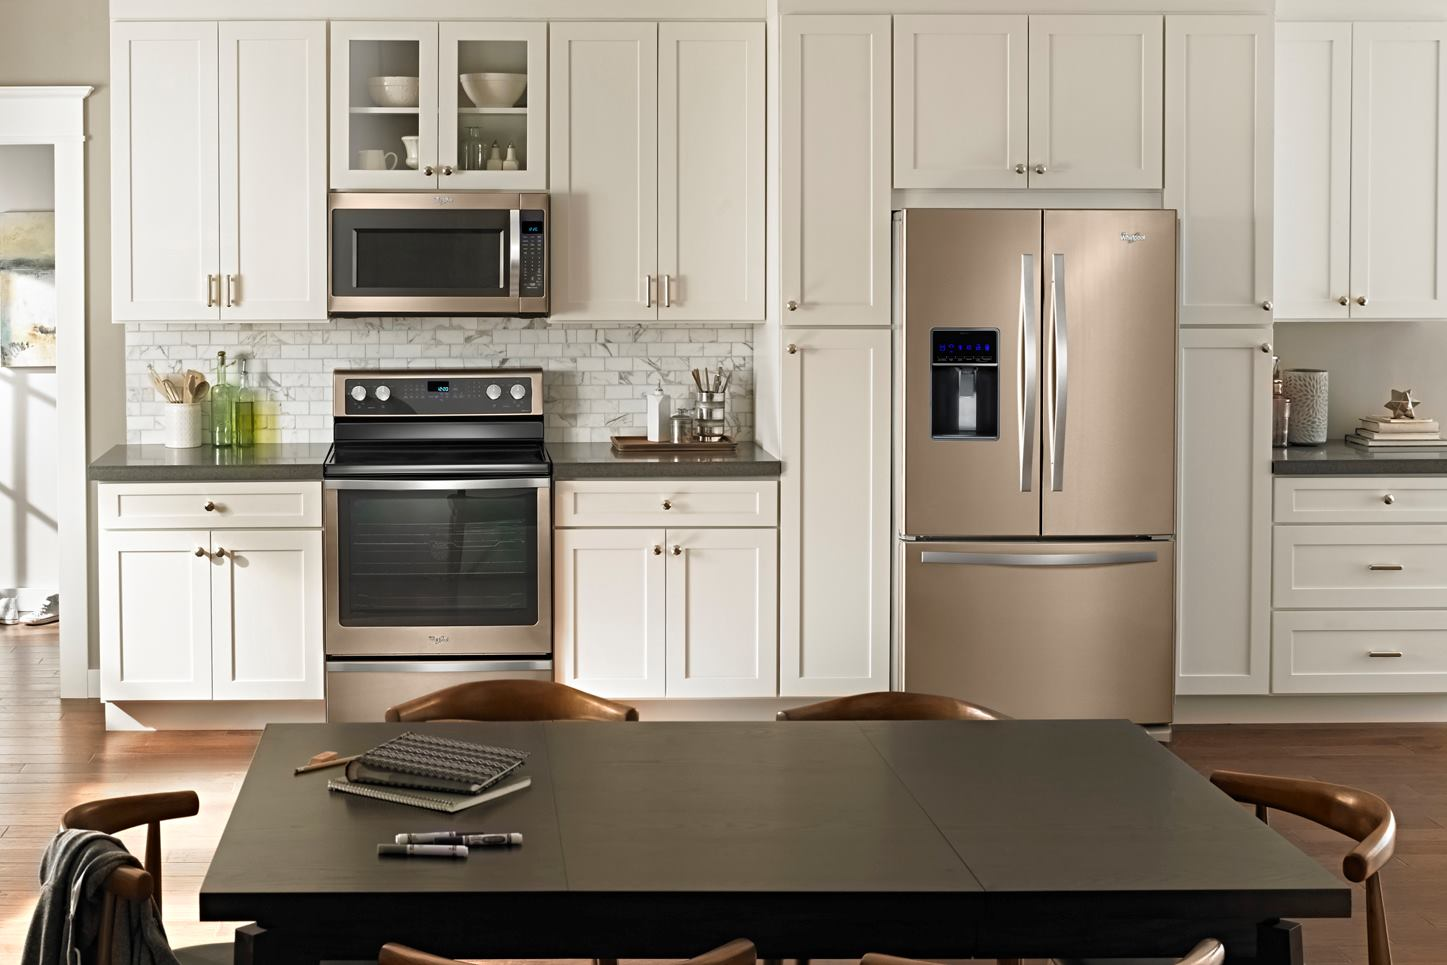 whirlpool revisits the bronze age with new color option jlc online